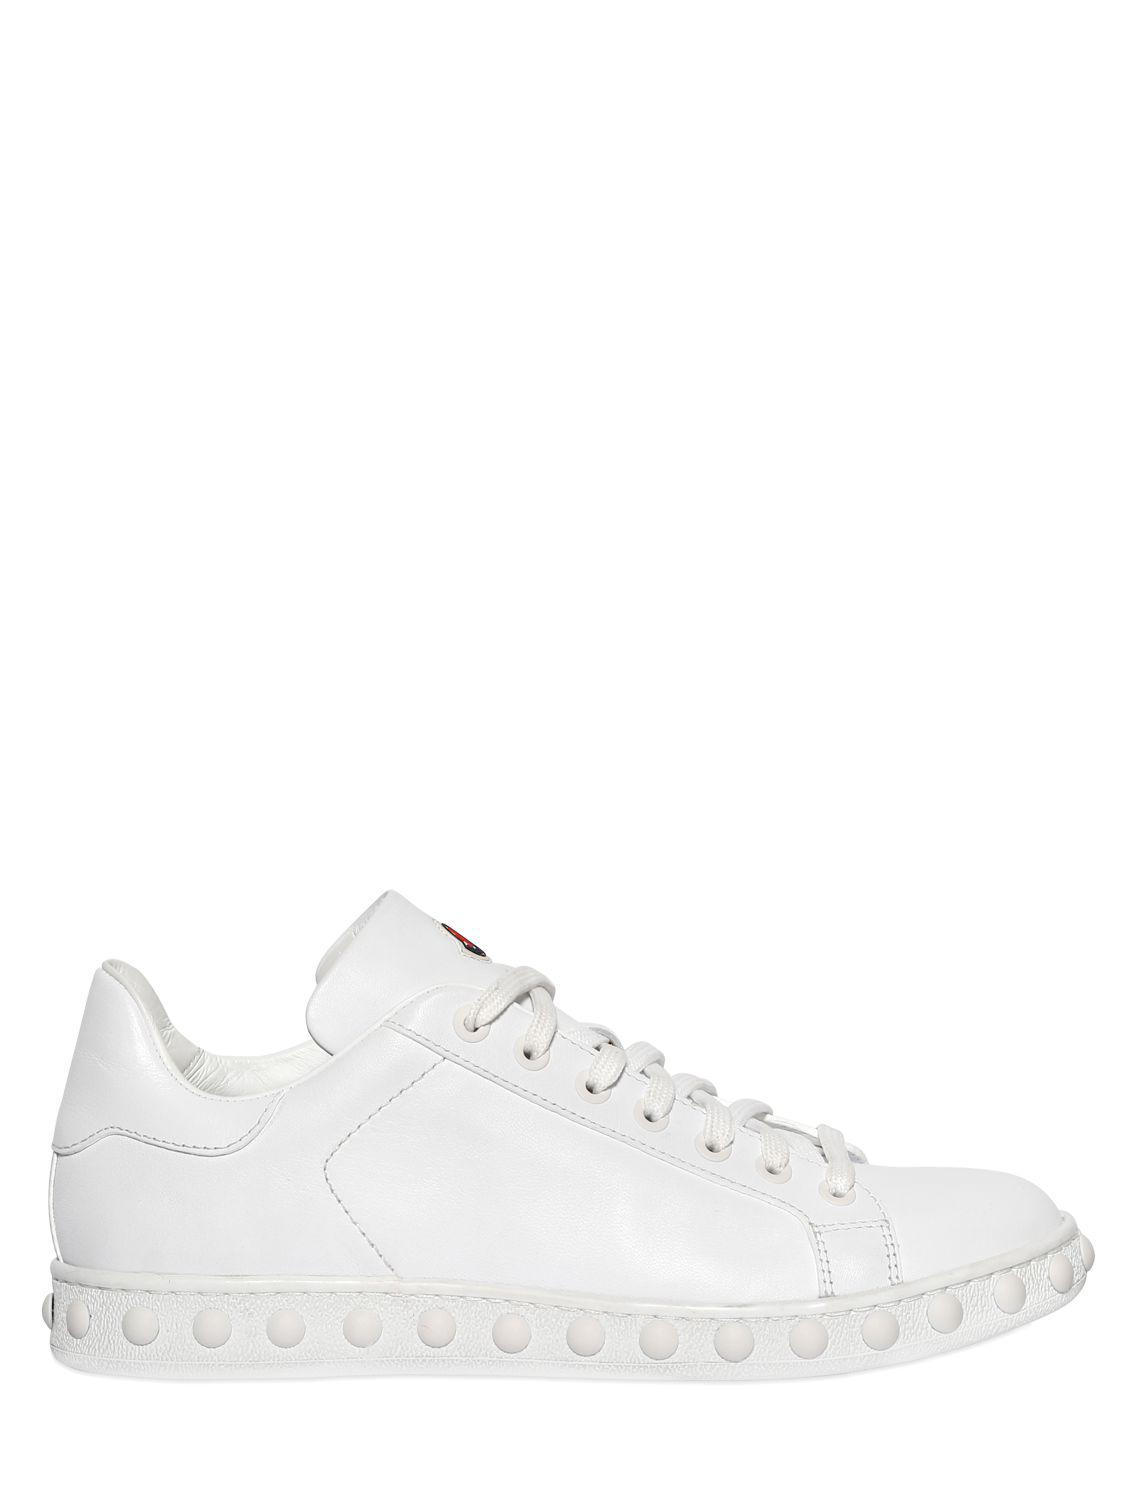 Cheap Sale Buy Fifi sneakers - White Moncler Best Store To Get Online Explore Discounts For Sale 4eXZGg9